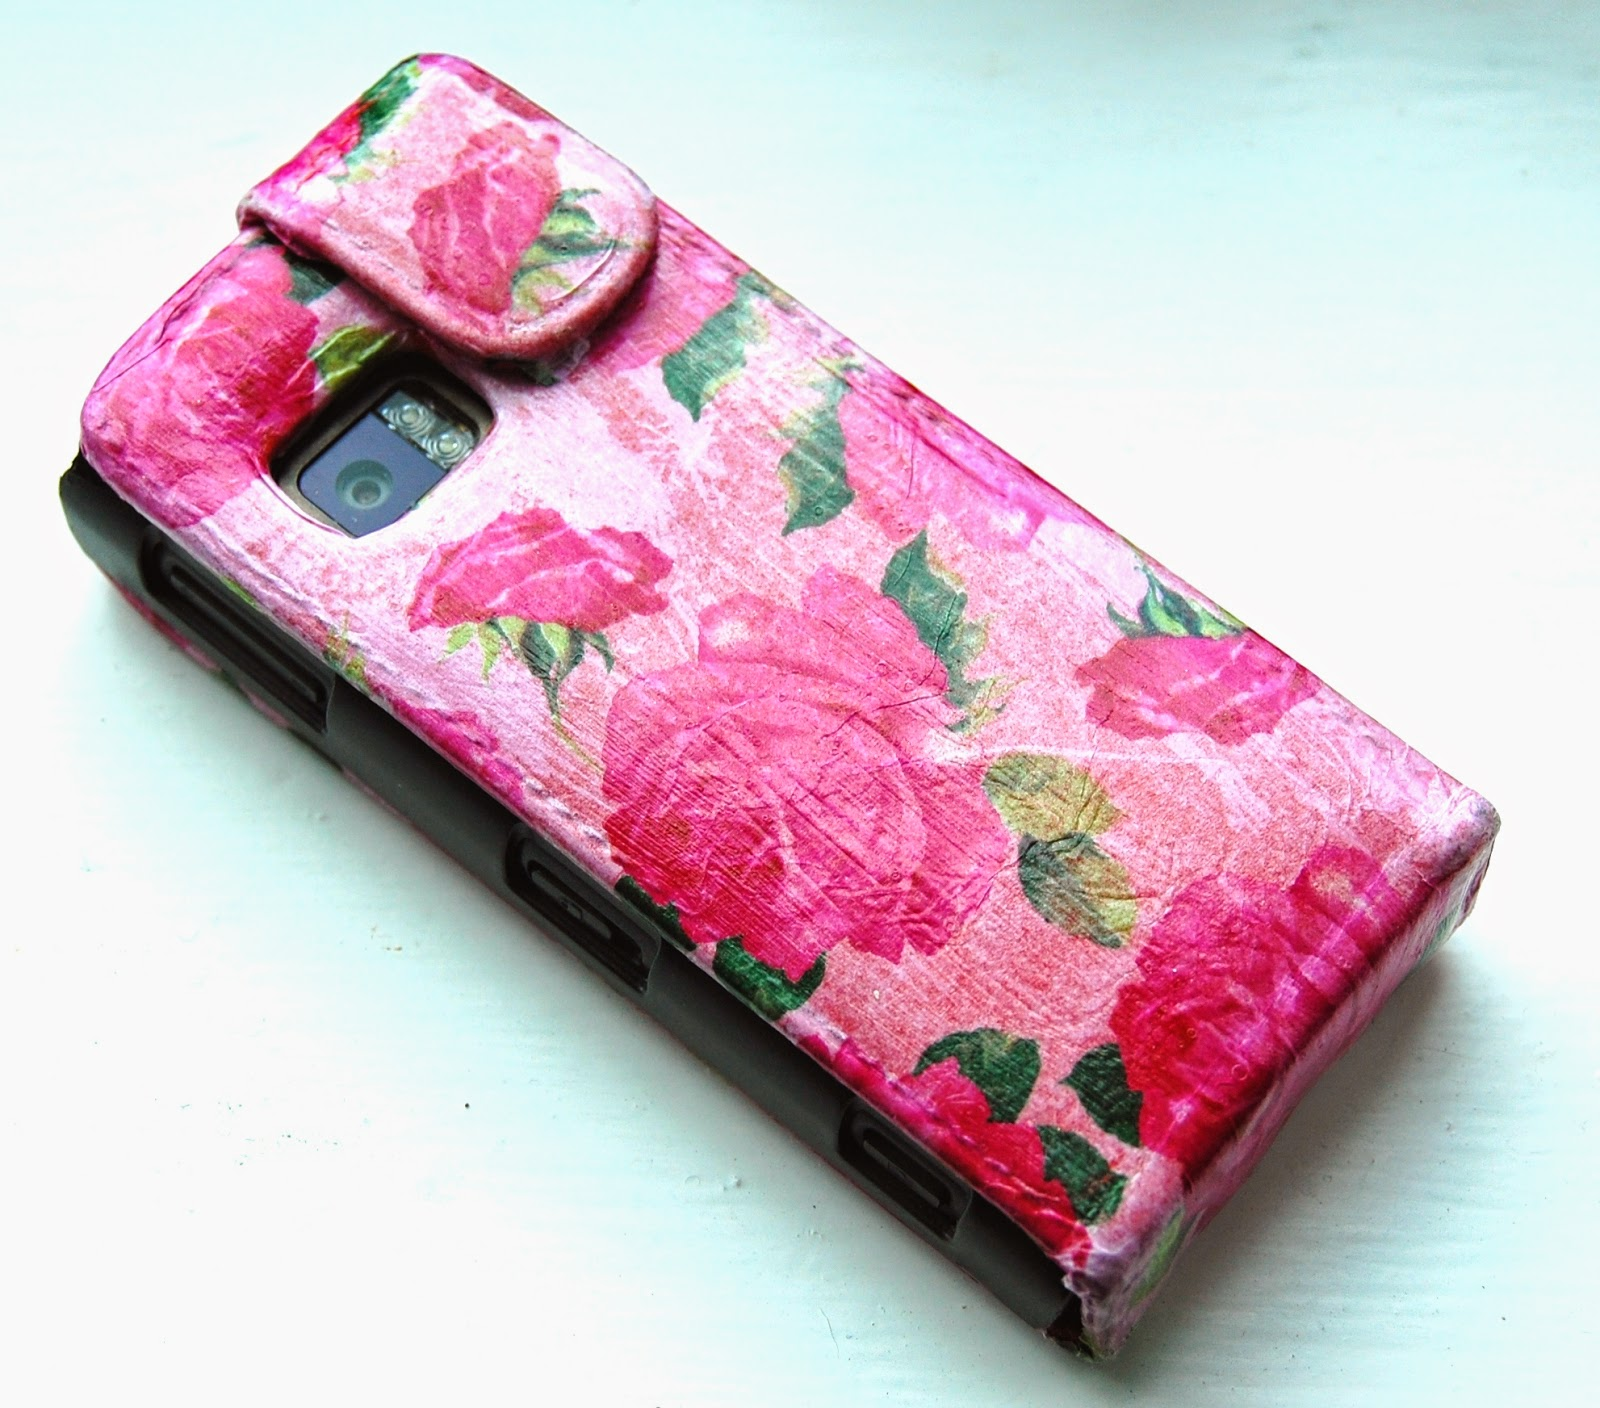 99p phone cover re vamp using decopatch paper diy craft for Mobile case diy